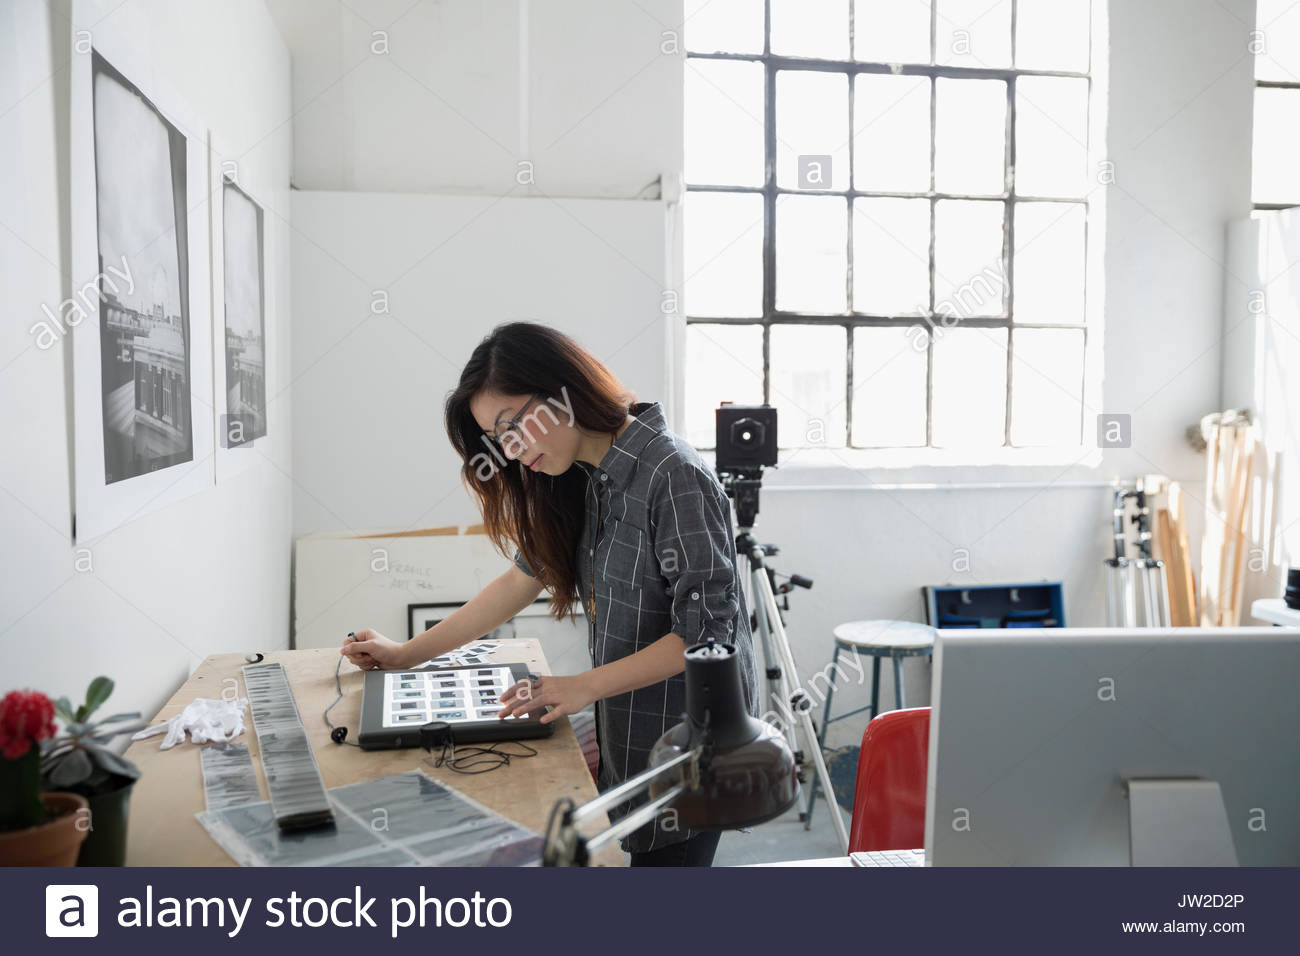 Female photographer reviewing photographic slides in art studio - Stock Image